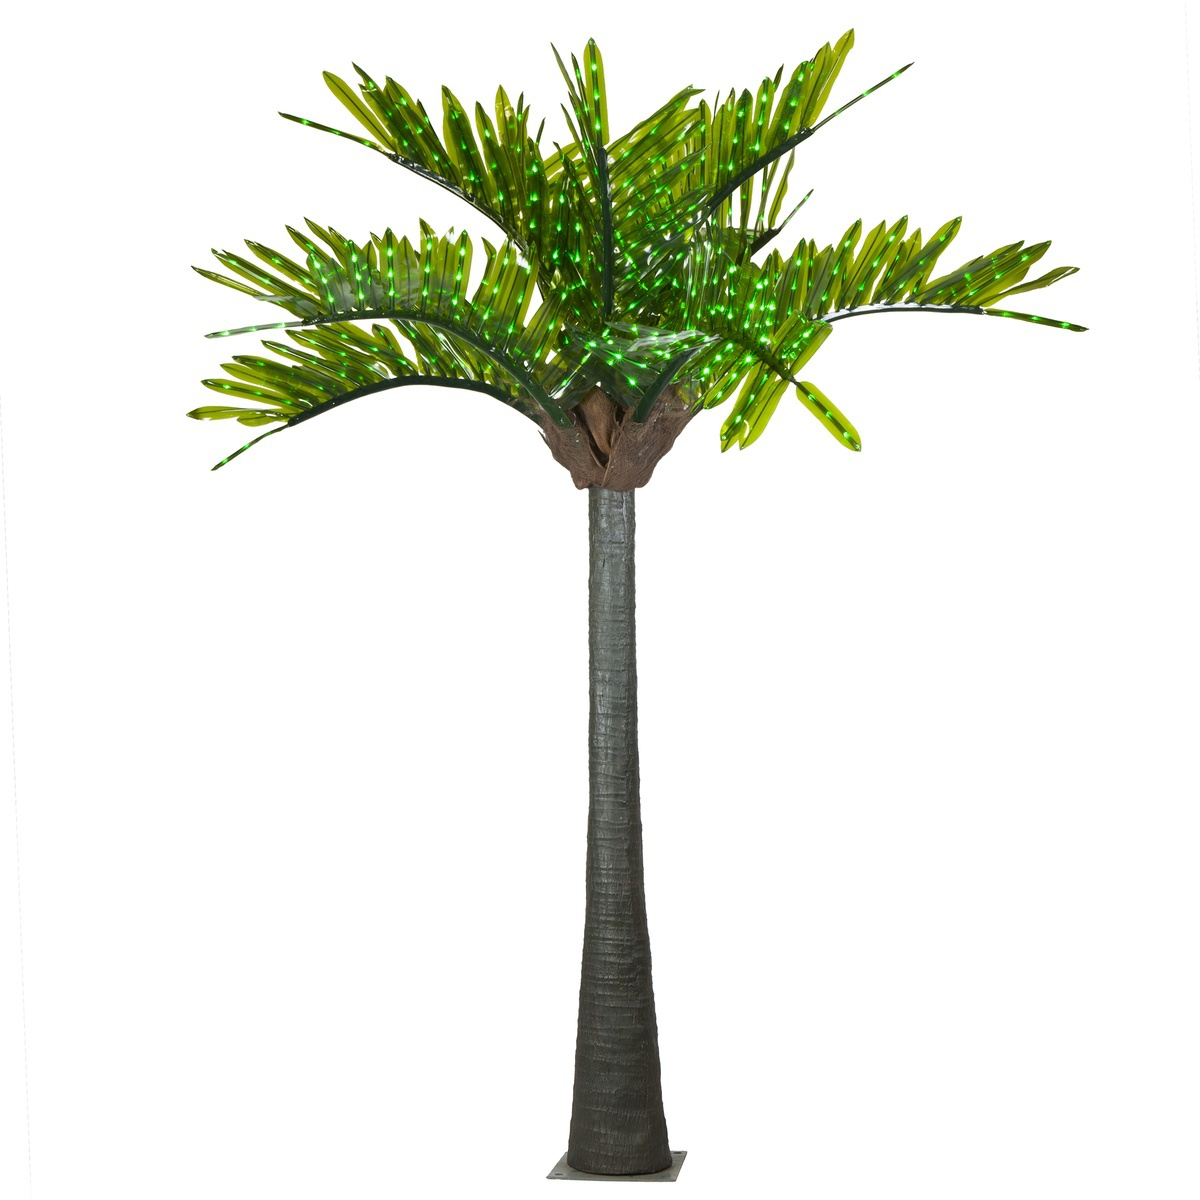 Realistic LED Commercial Lighted Palm Tree